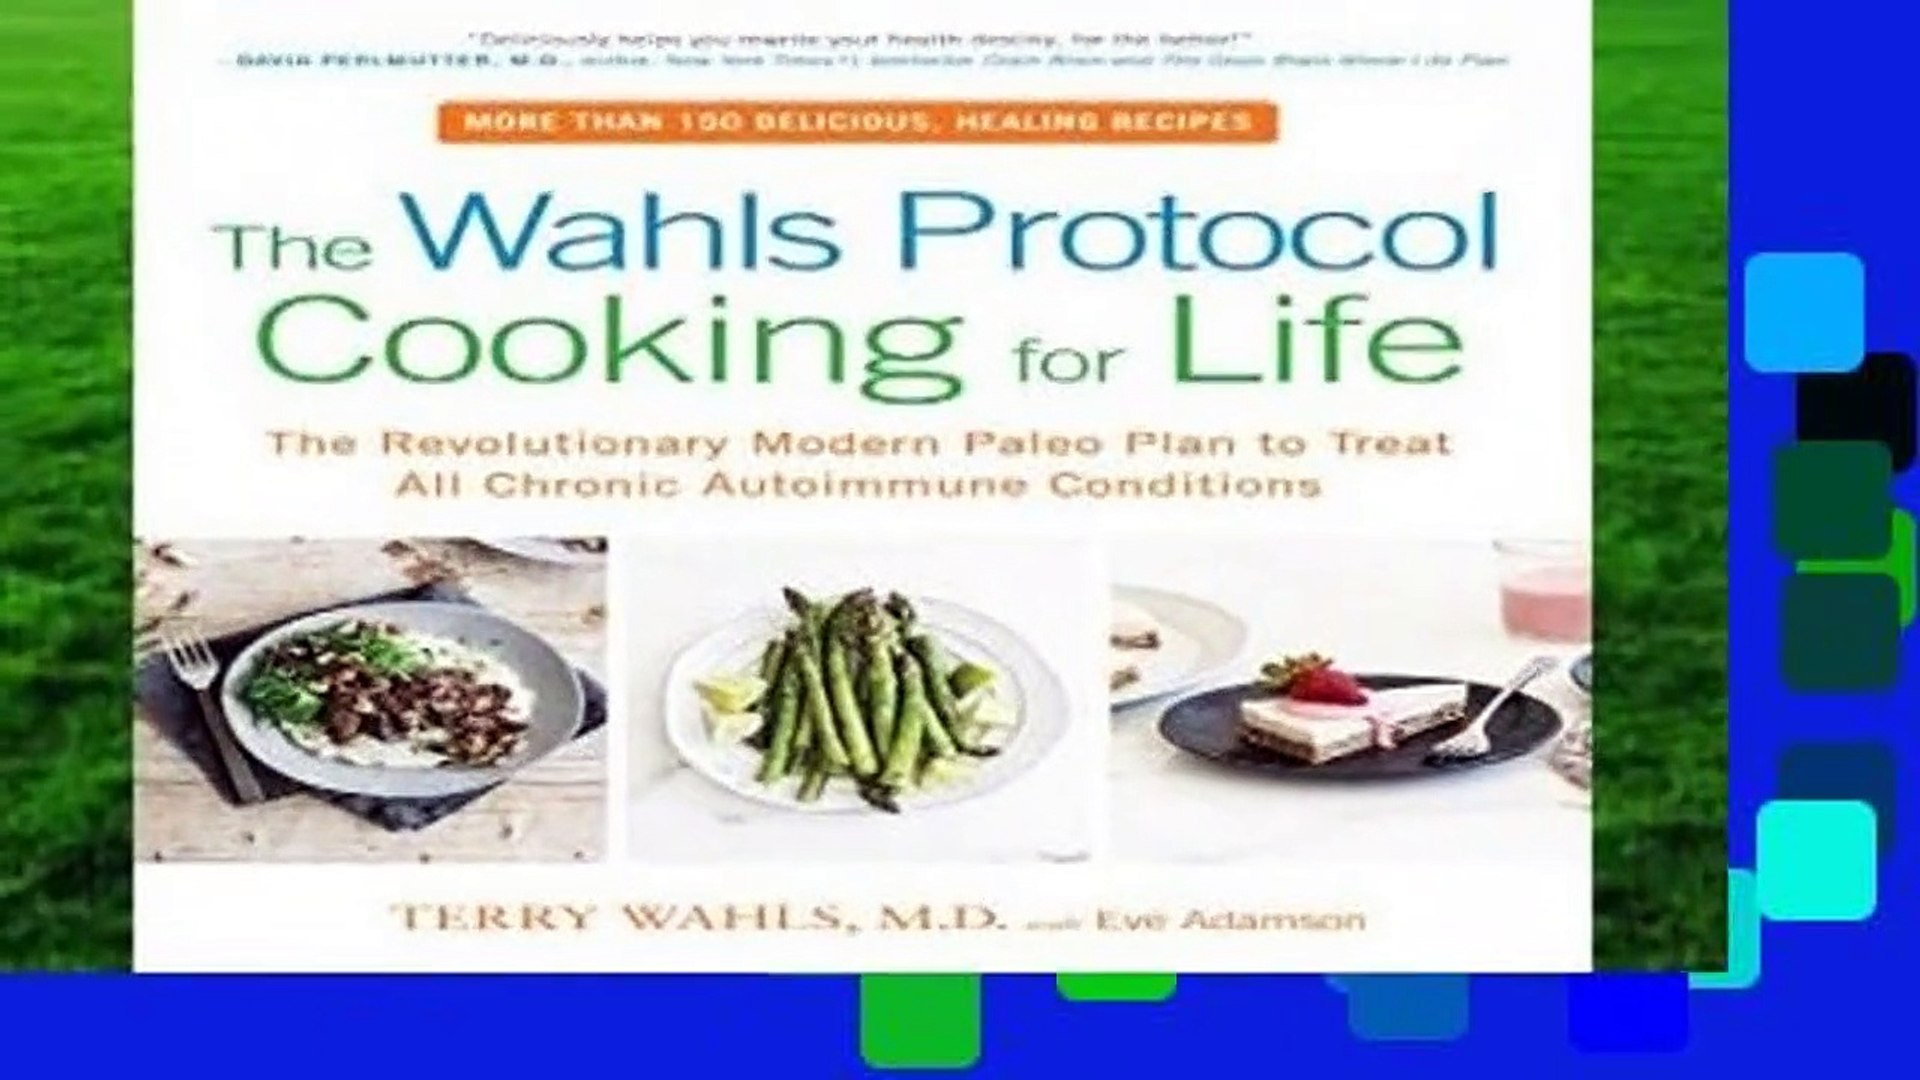 Any Format For Kindle The Wahls Protocol Cooking for Life The Revolutionary  Modern Paleo Plan